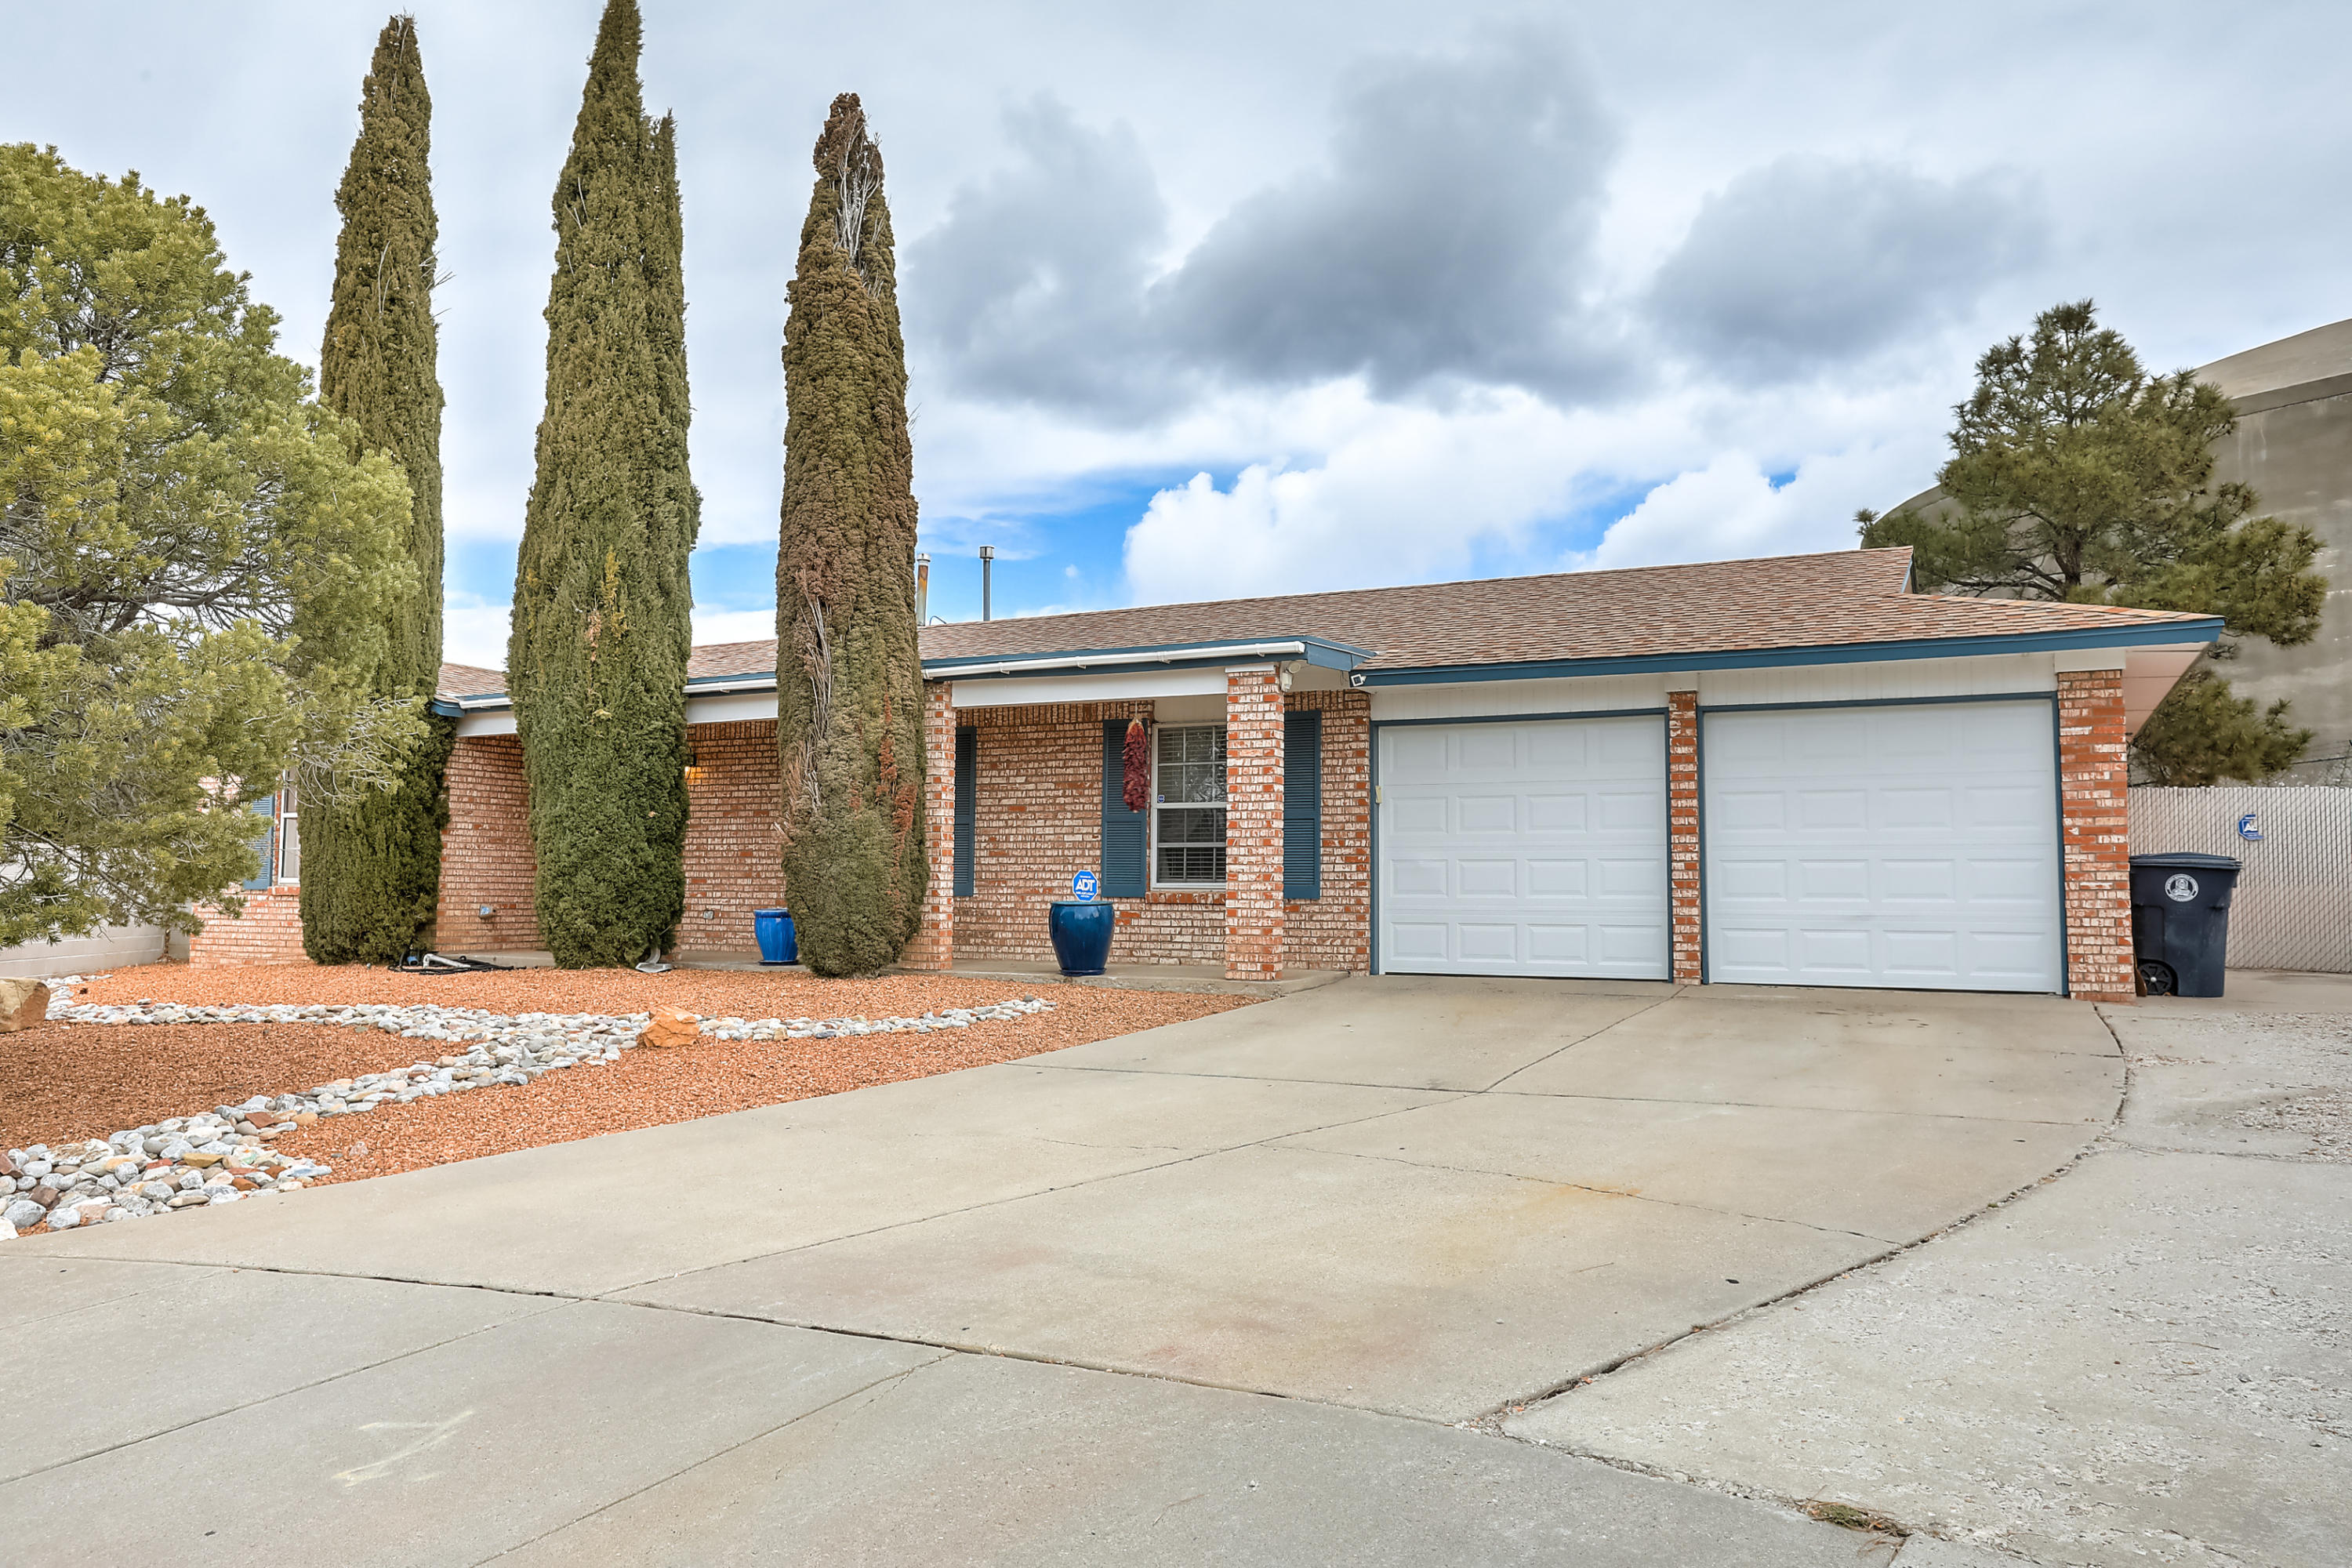 4709 BALI Court NE Property Photo - Albuquerque, NM real estate listing